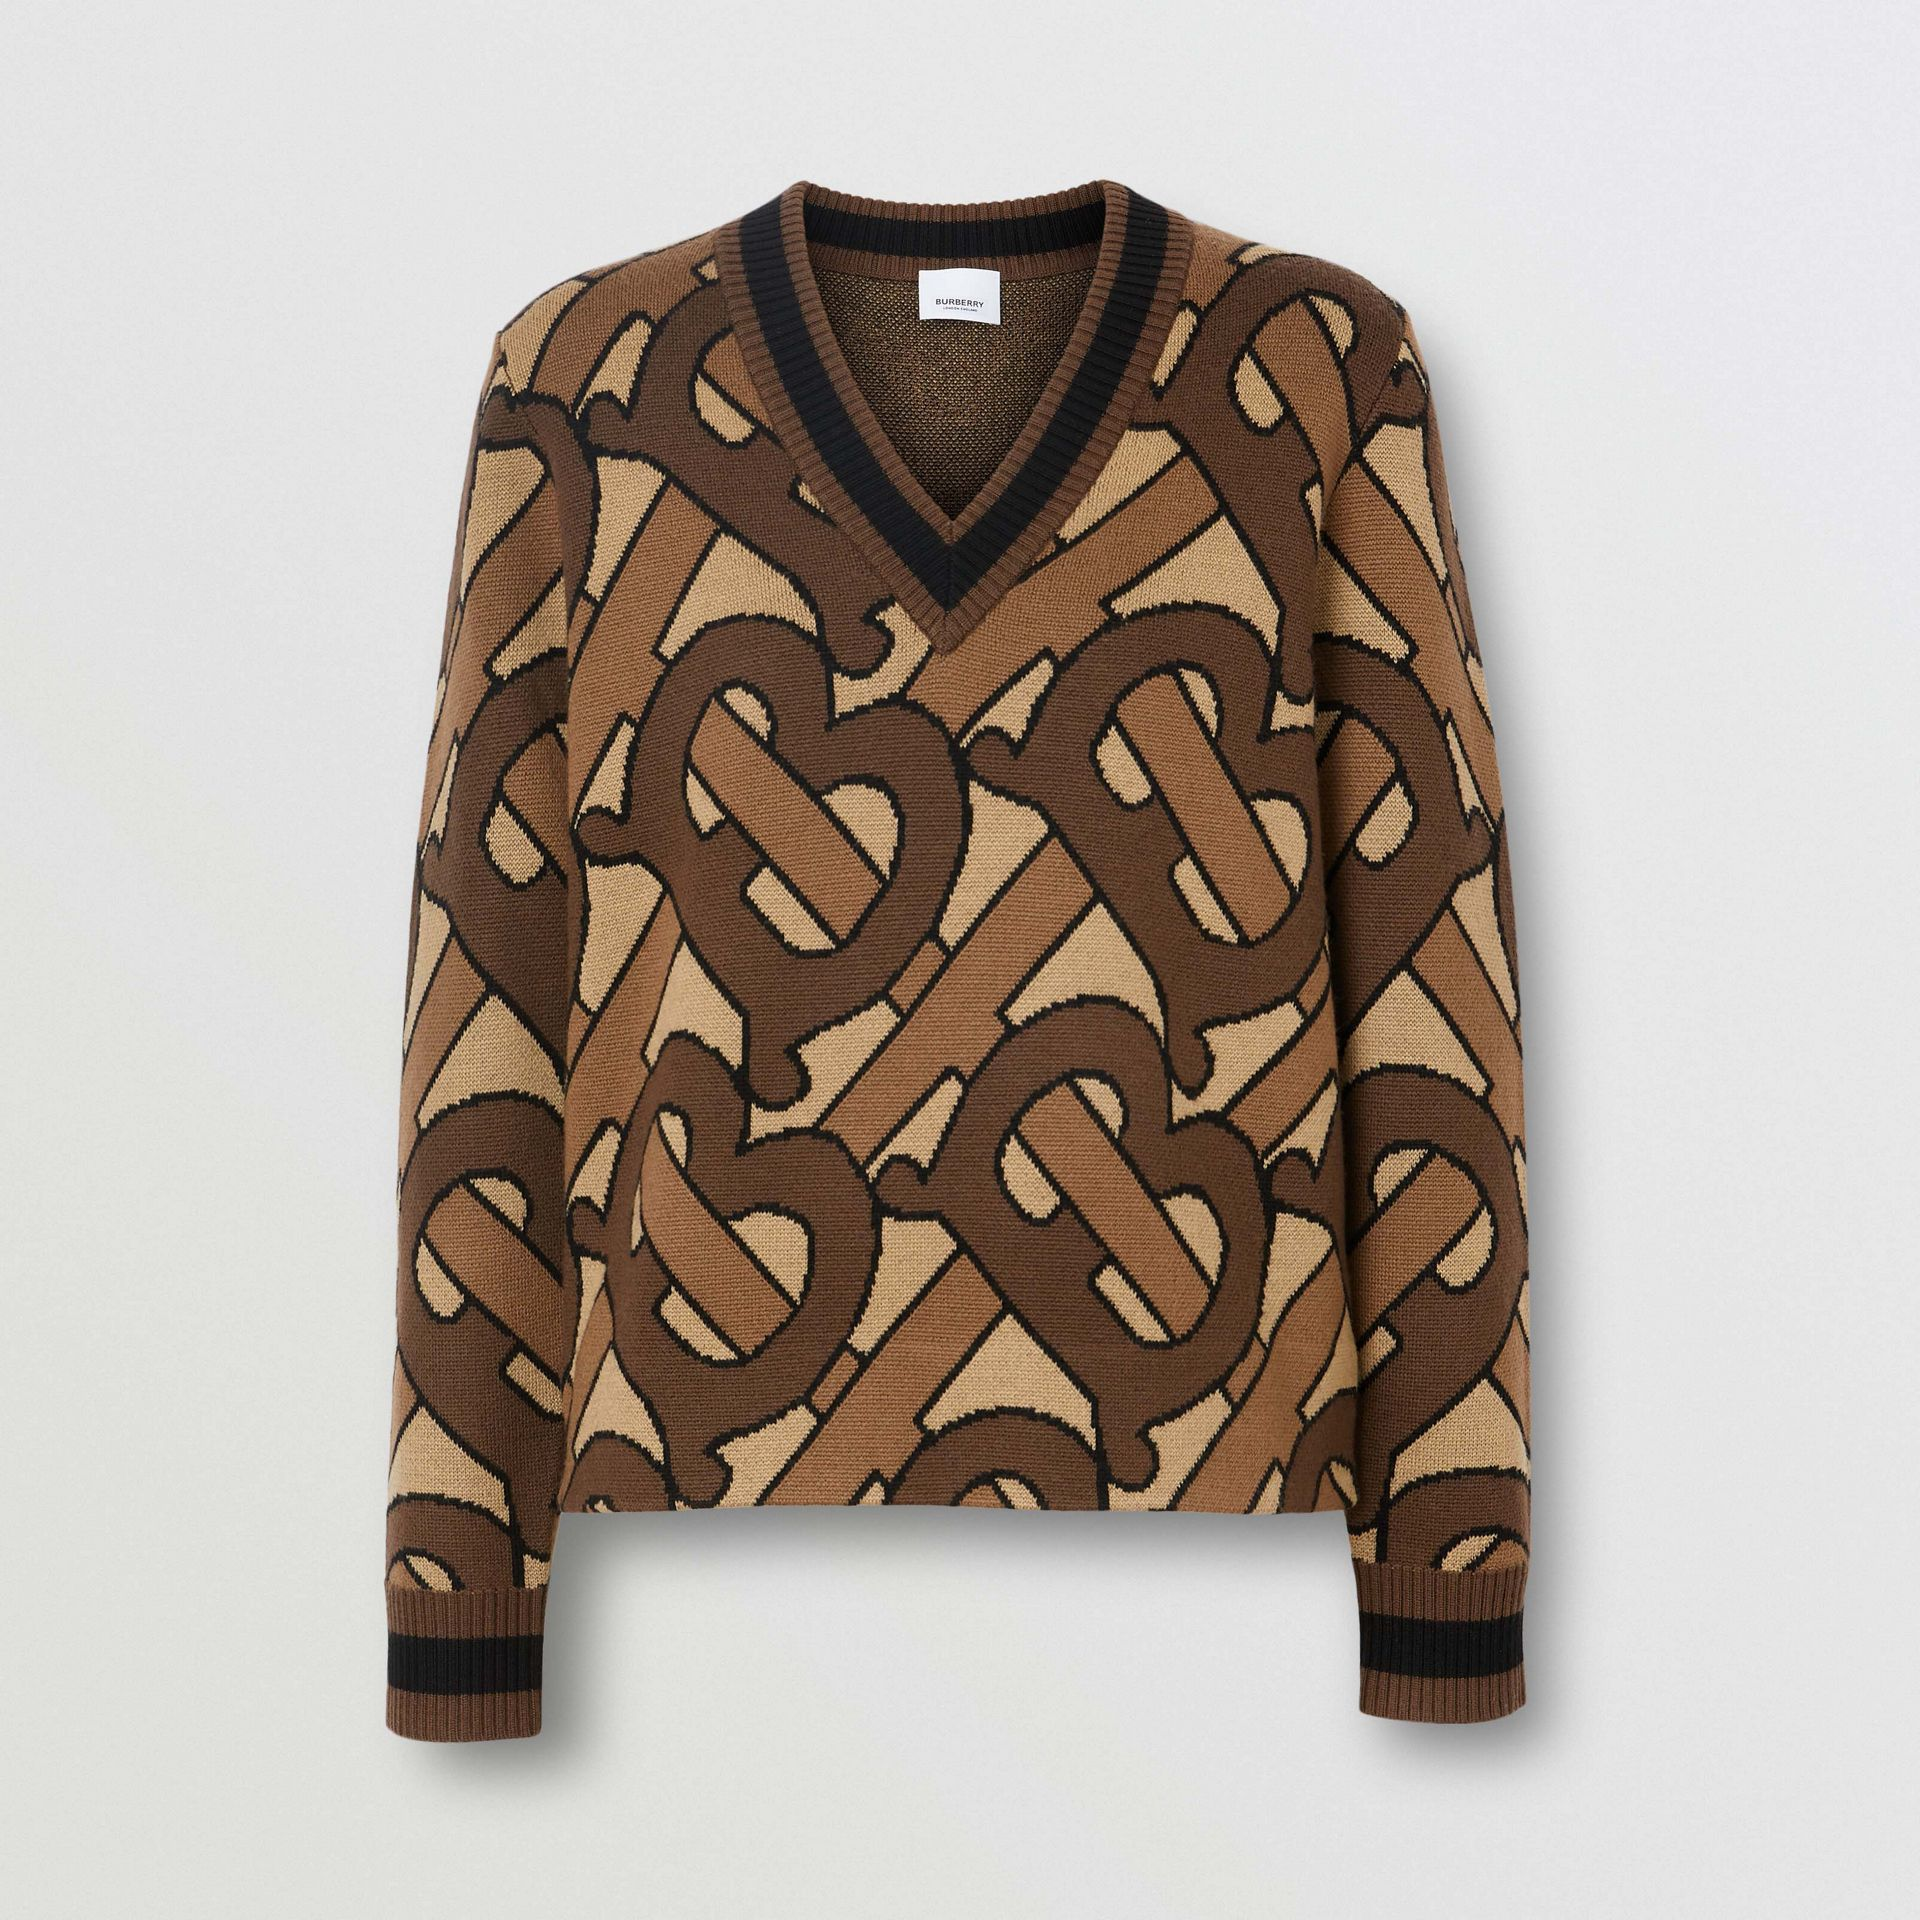 Monogram Intarsia Wool V-neck Sweater in Bridle Brown - Women | Burberry - gallery image 3